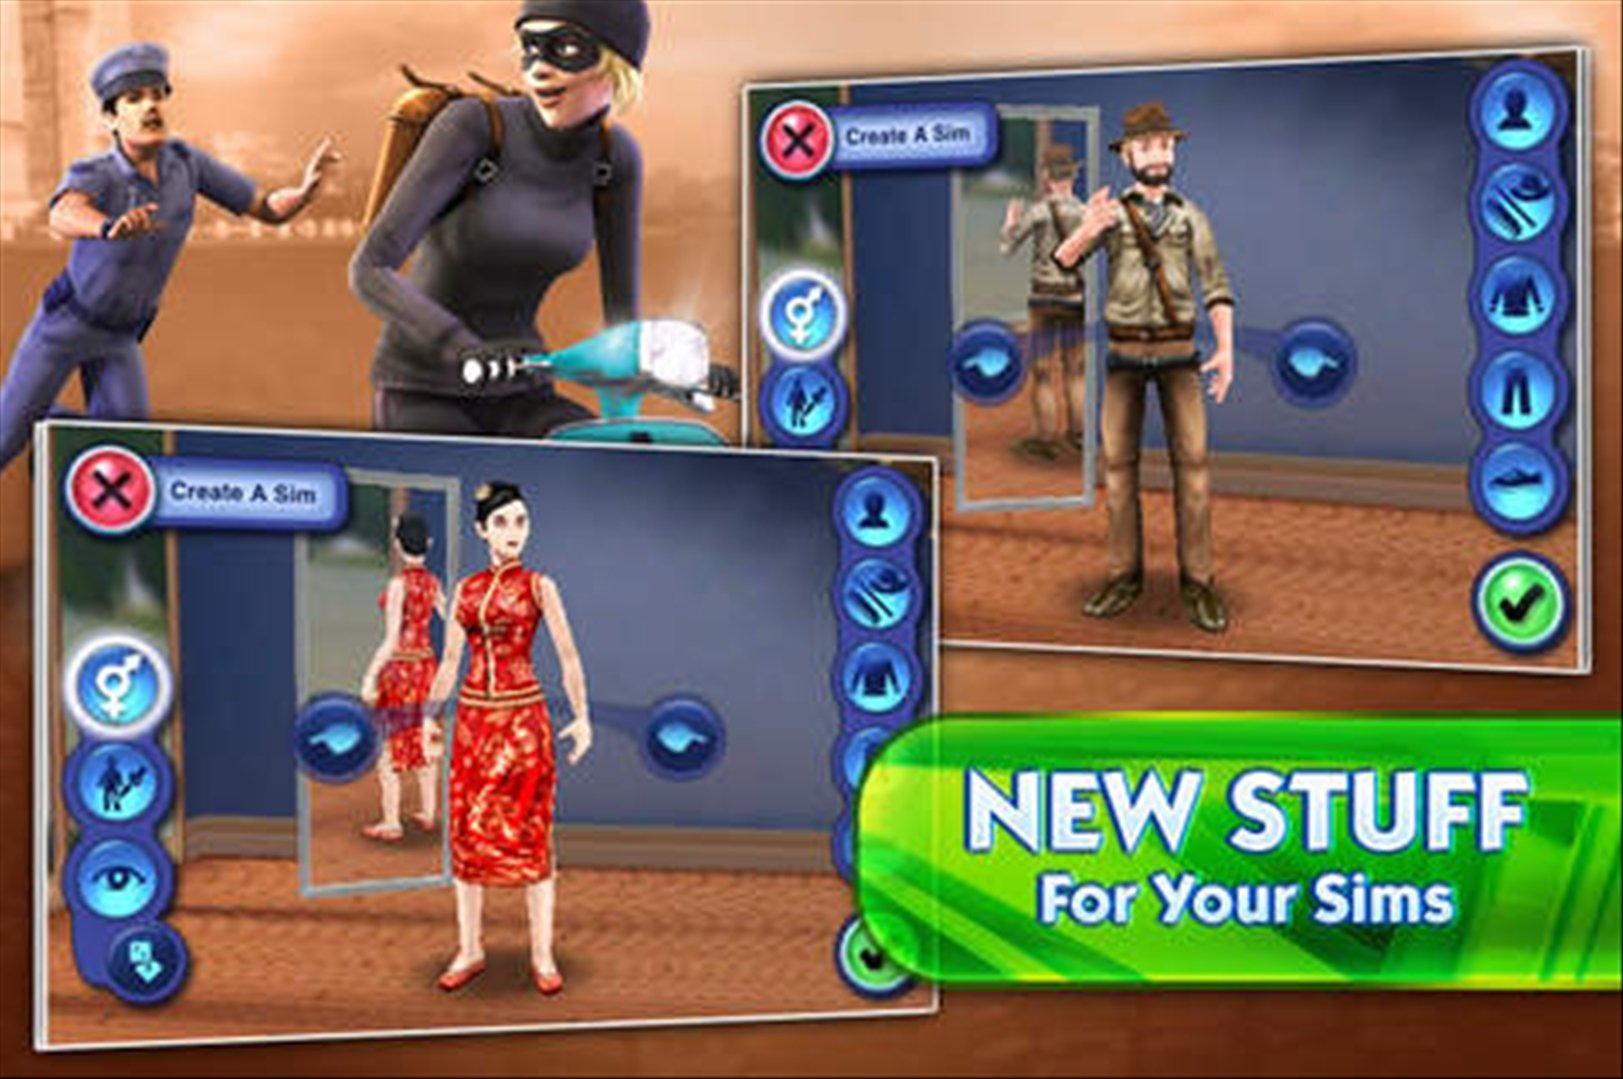 The sims 3 world adventures free download for pc